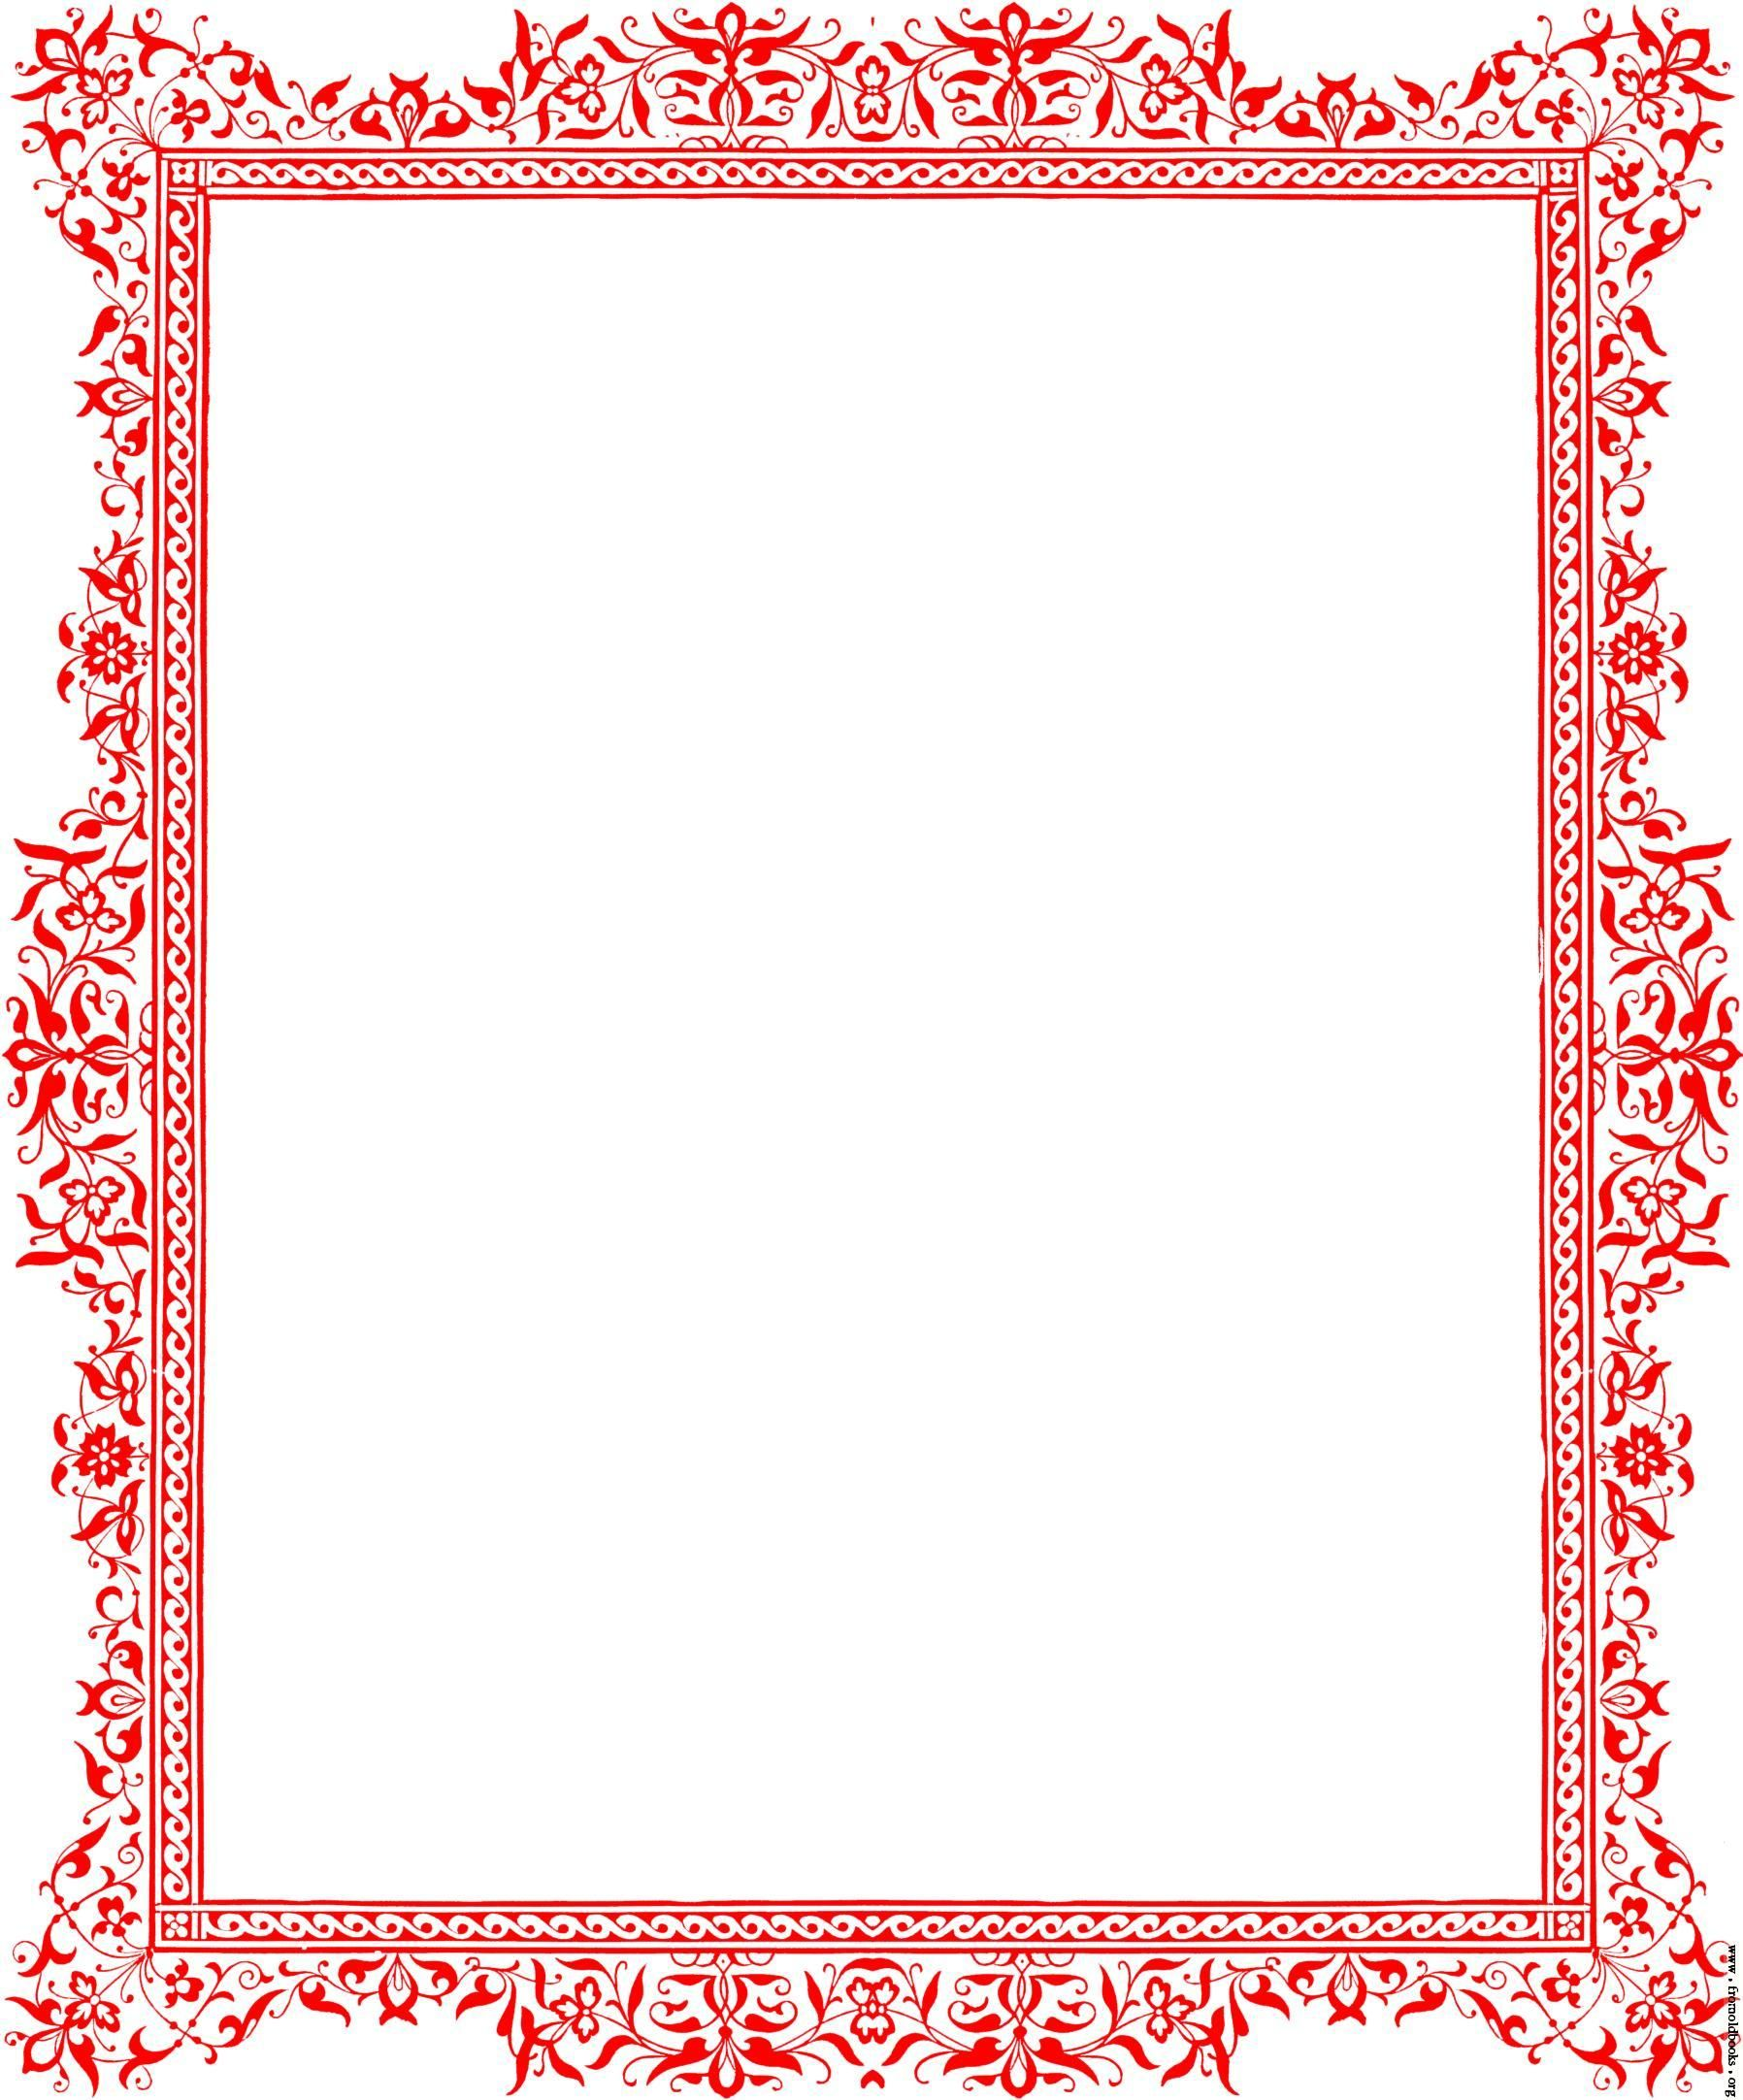 Red border clipart banner royalty free download decorative backgrounds for word documents | Red border from ... banner royalty free download